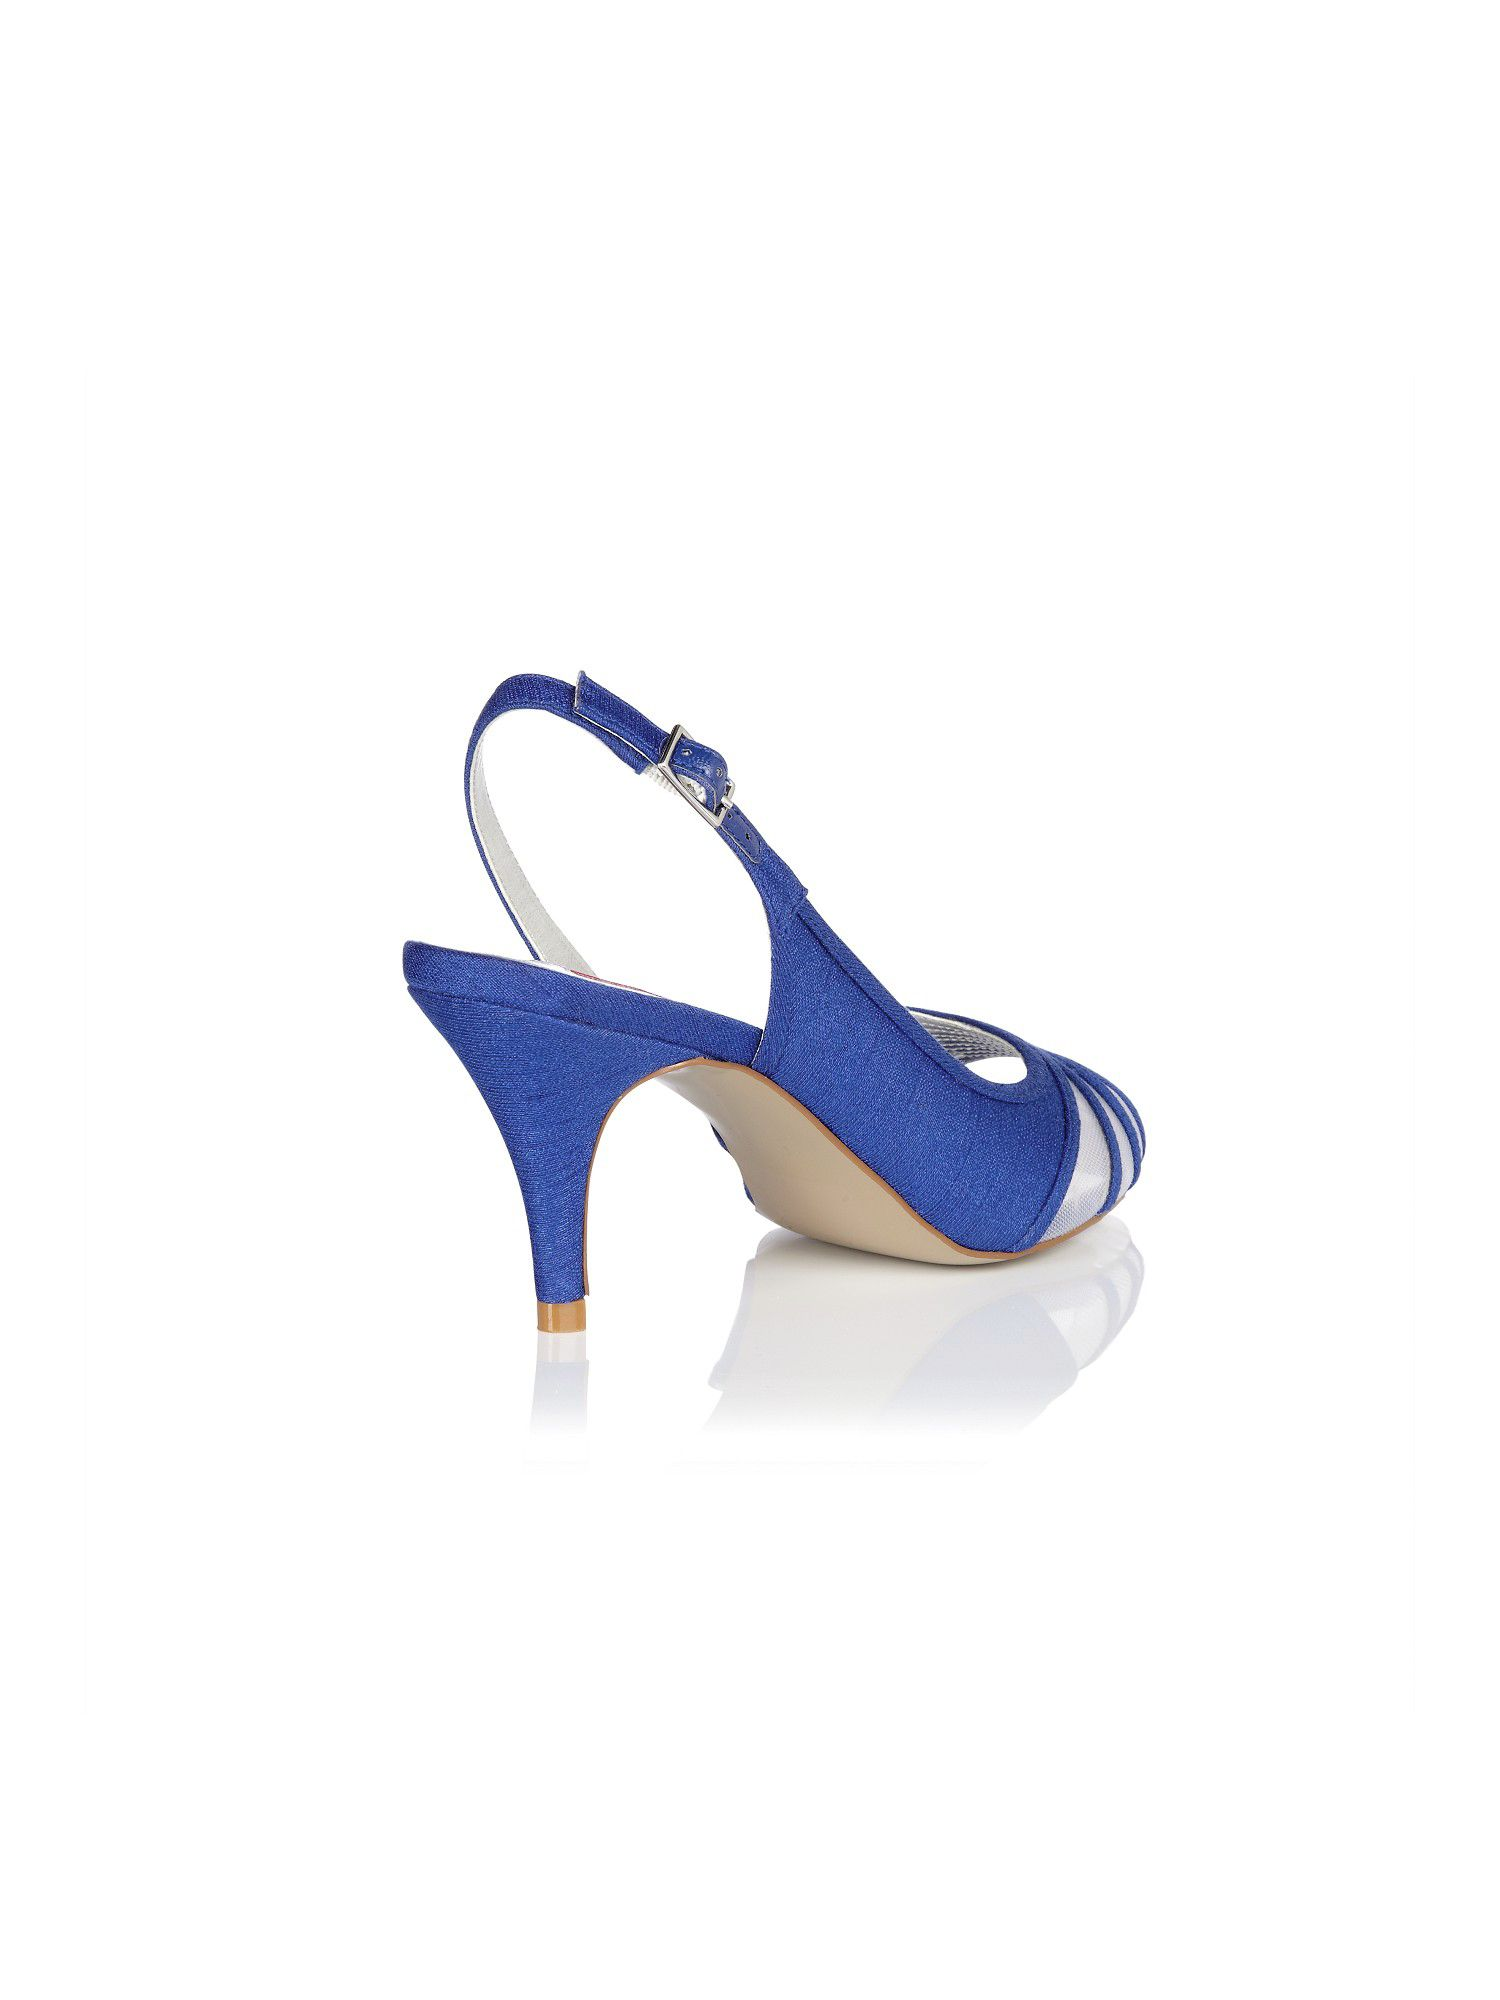 Delphinium mesh peep toe shoes